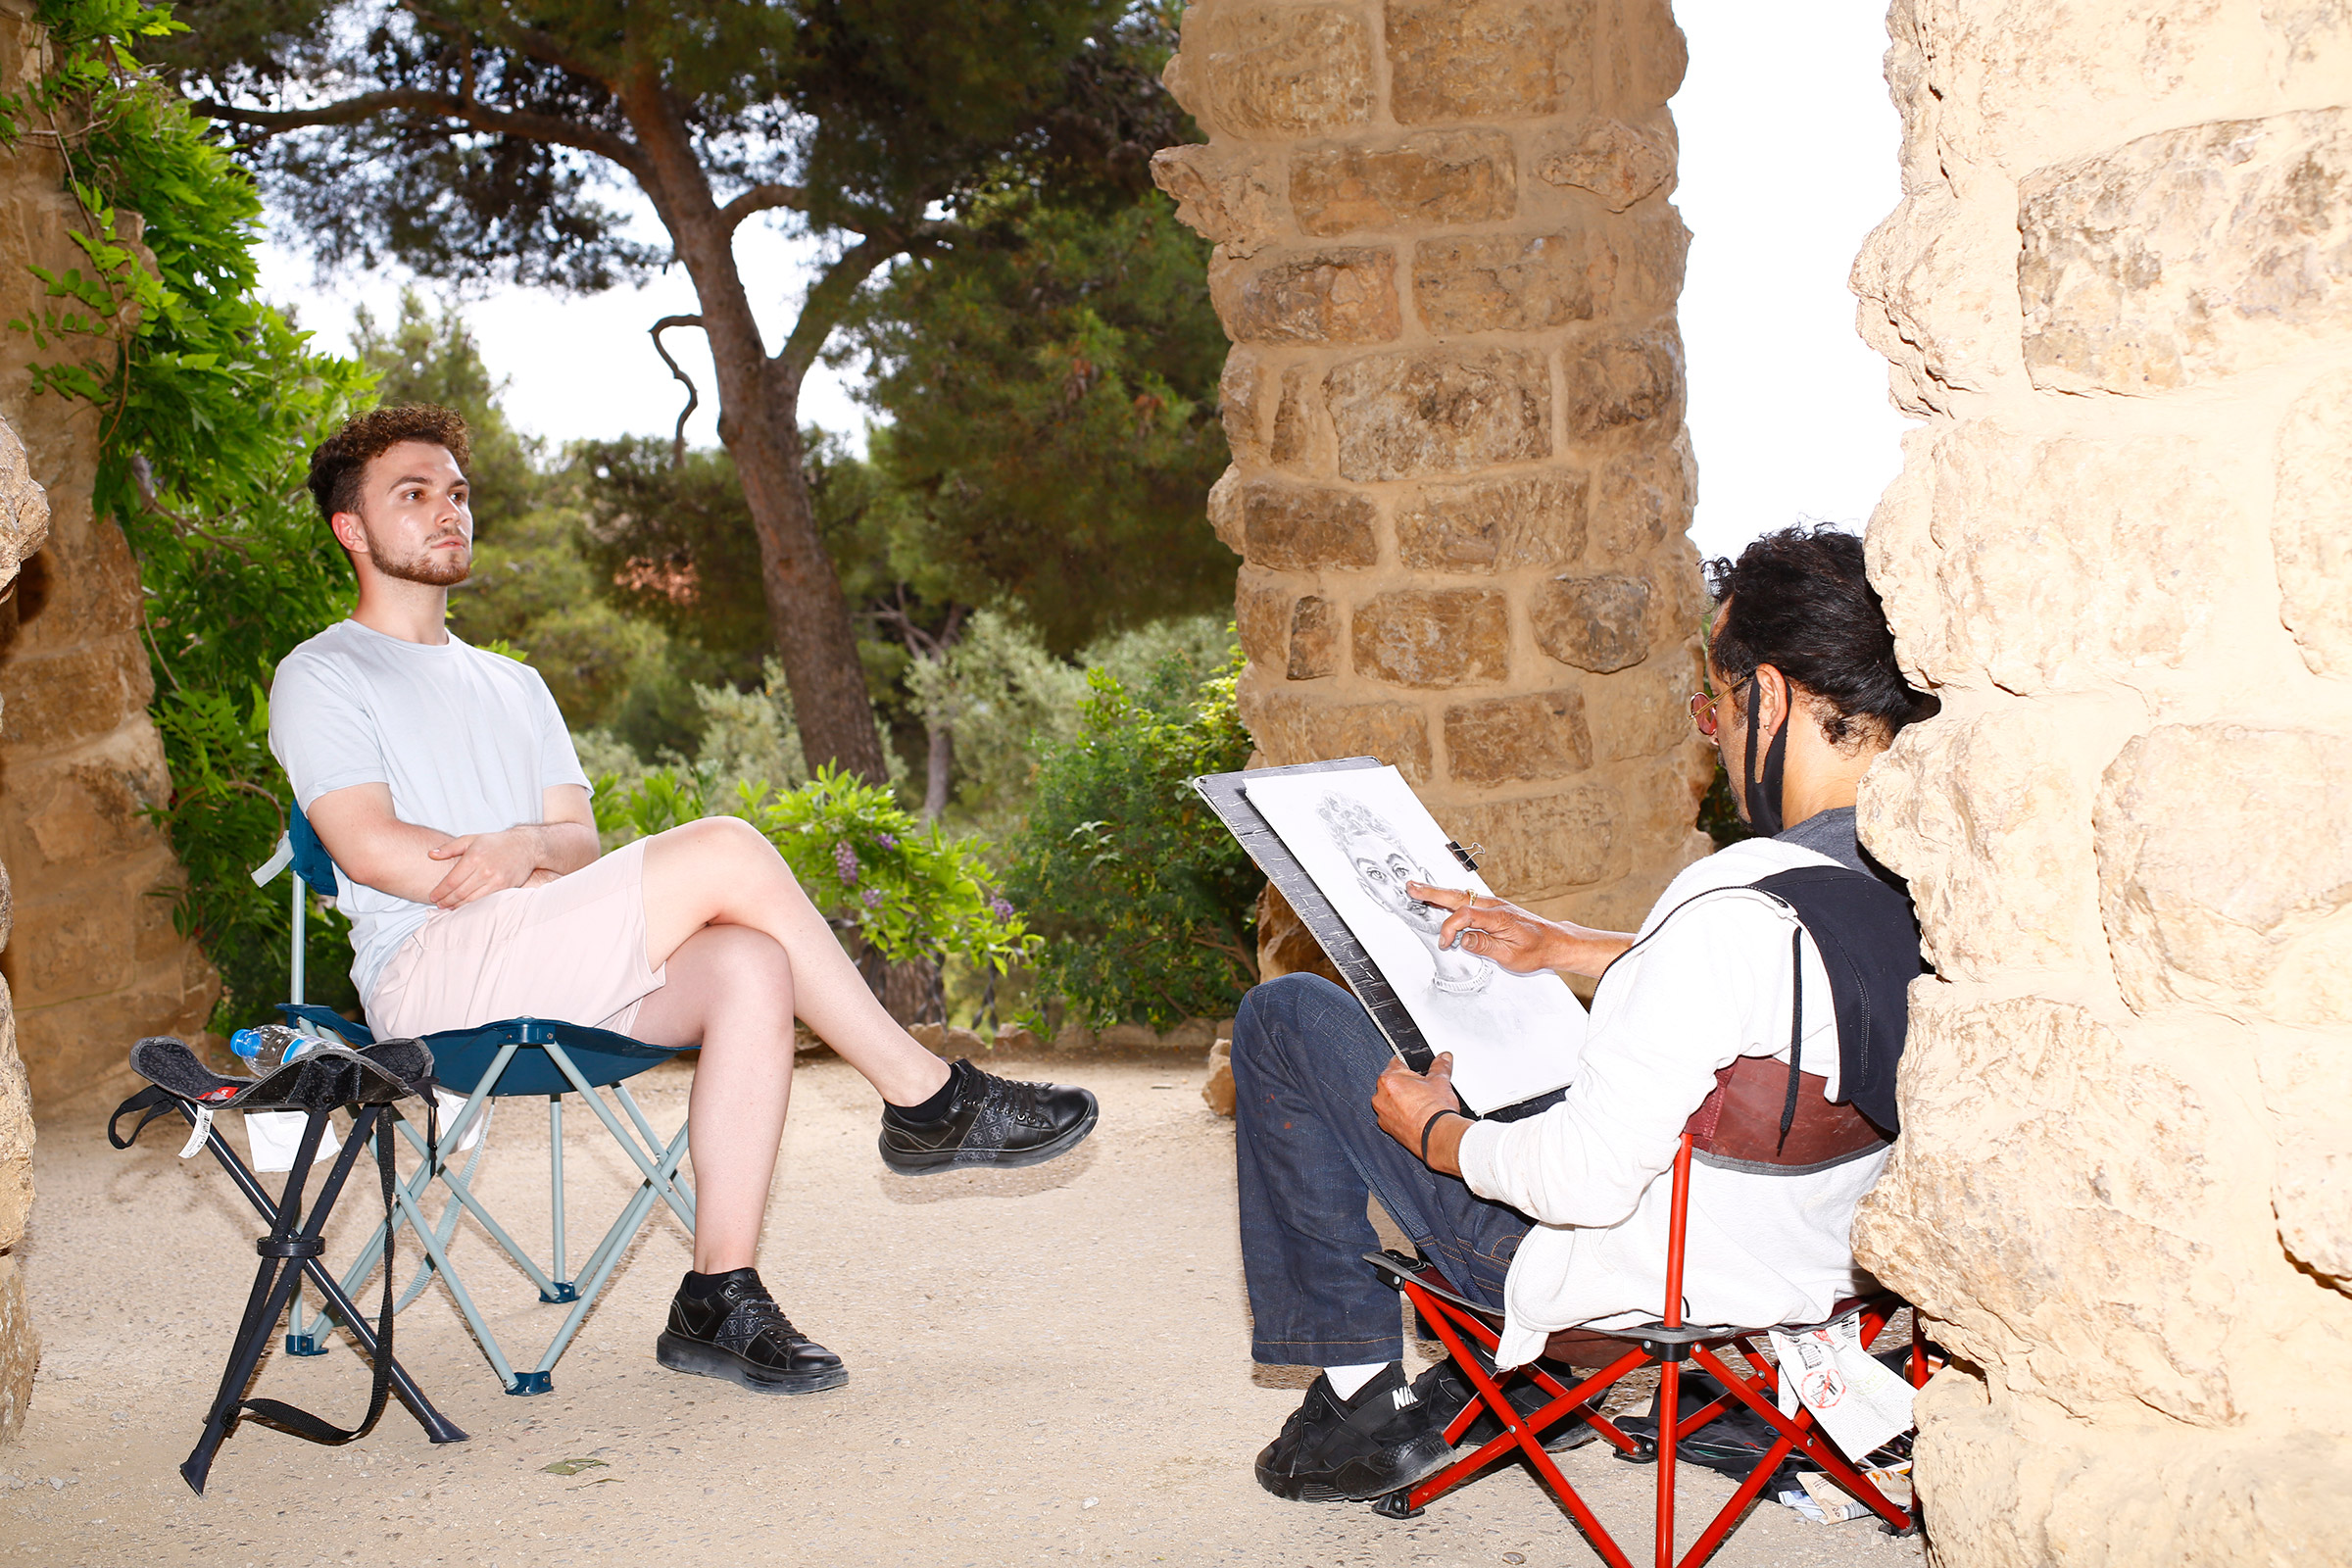 A portrait artist and his subject in Parc Güell on June 6.